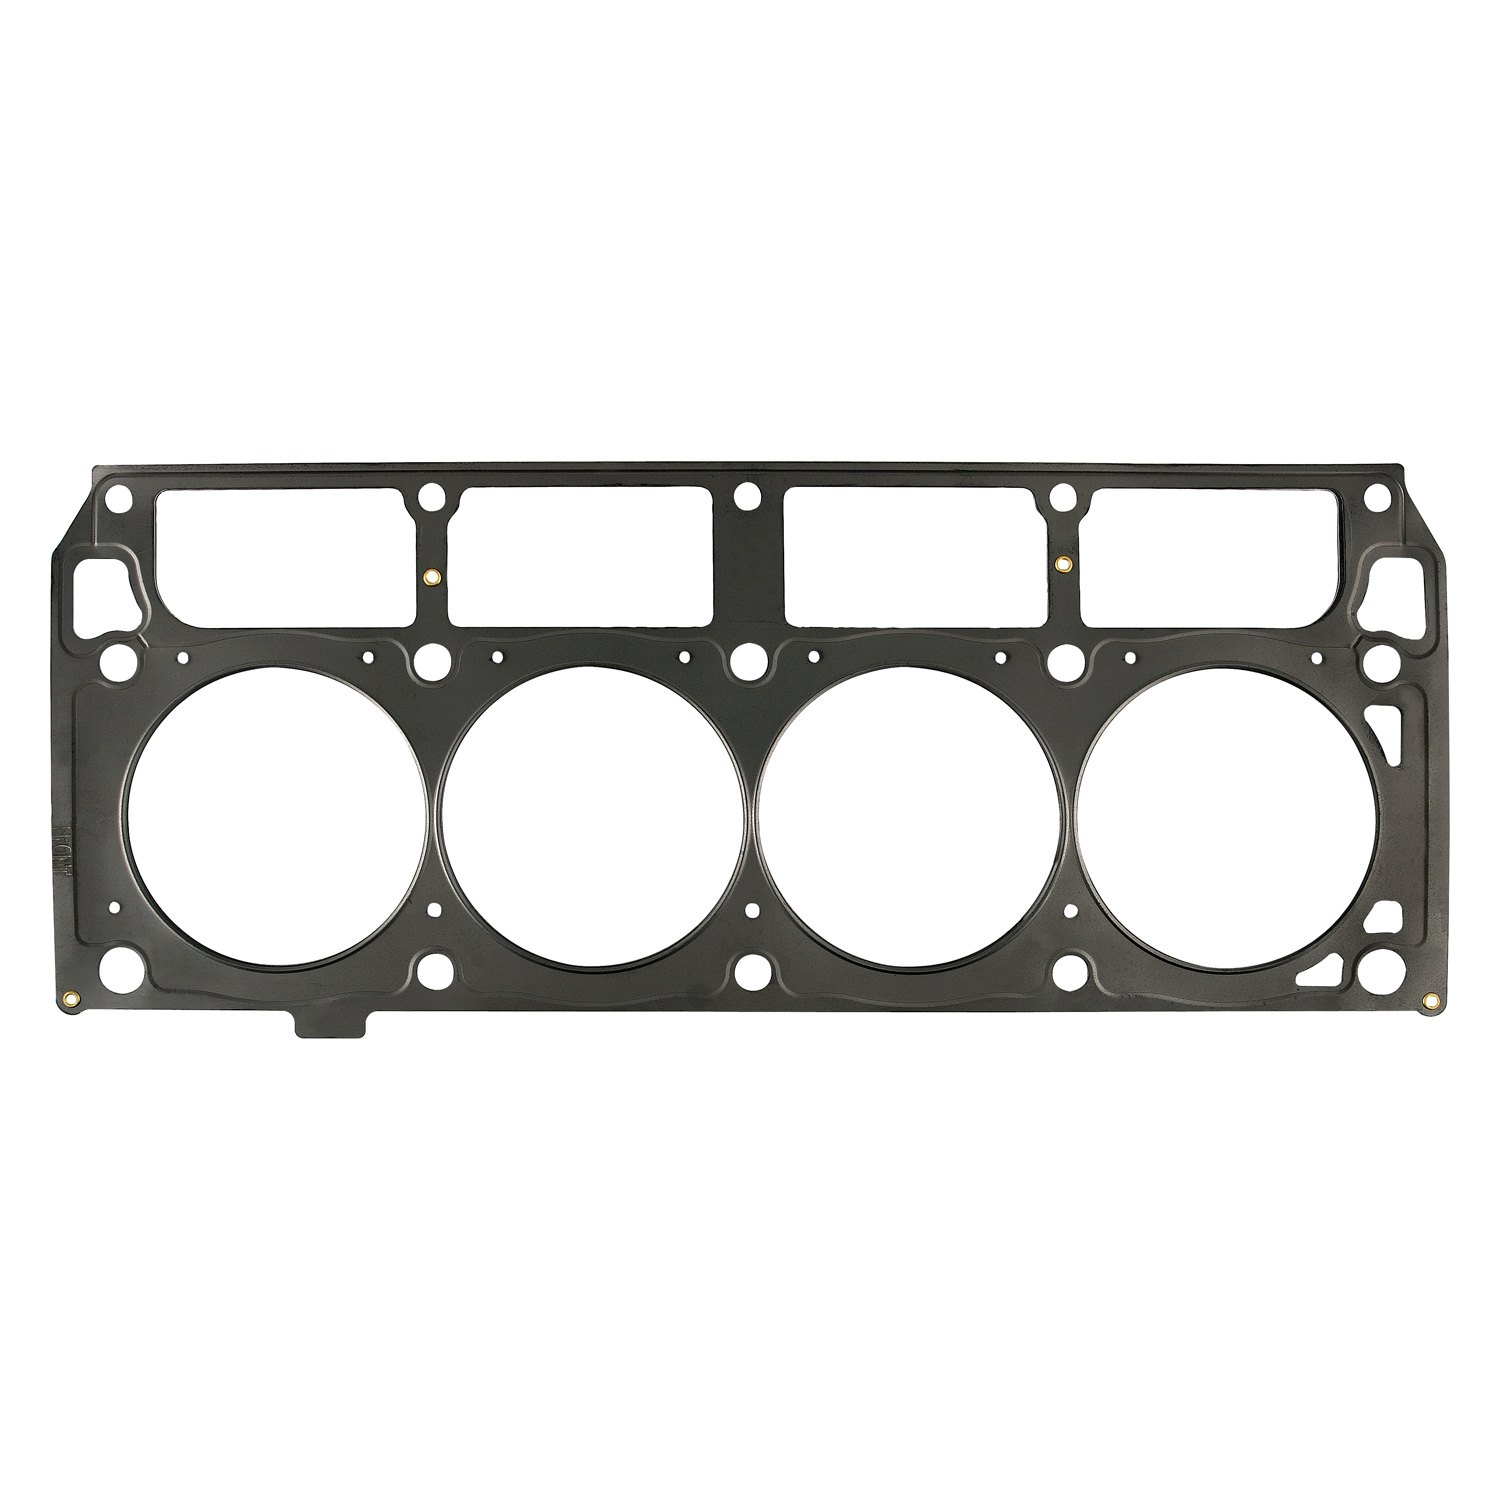 2015 Mini Roadster Head Gasket: For Chevy Camaro 2014-2015 Mr. Gasket 3291G MLS Cylinder